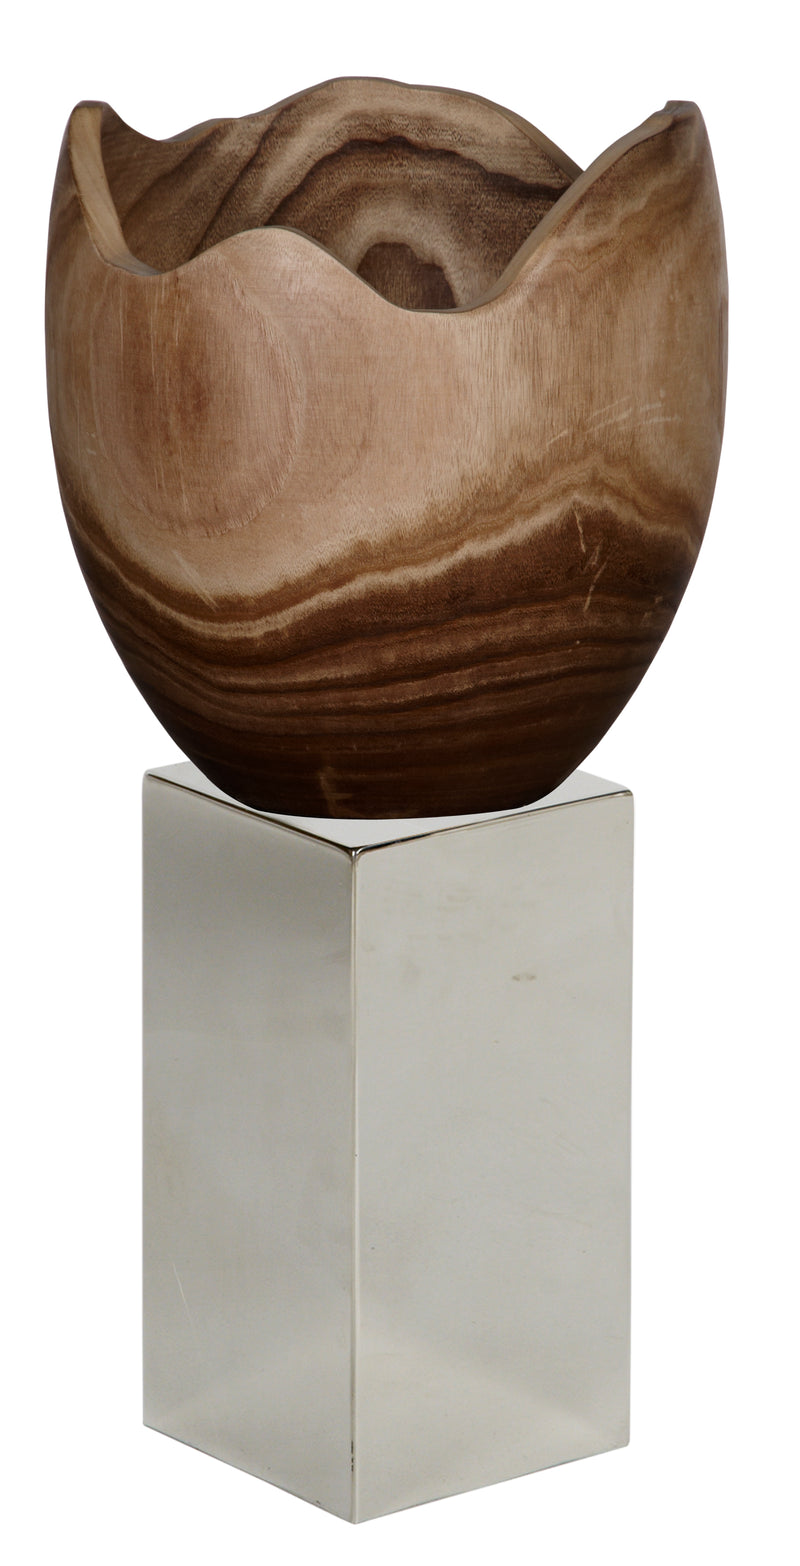 Paulownia Wooden Bowl on Stainless Steel Platform Ⅲ